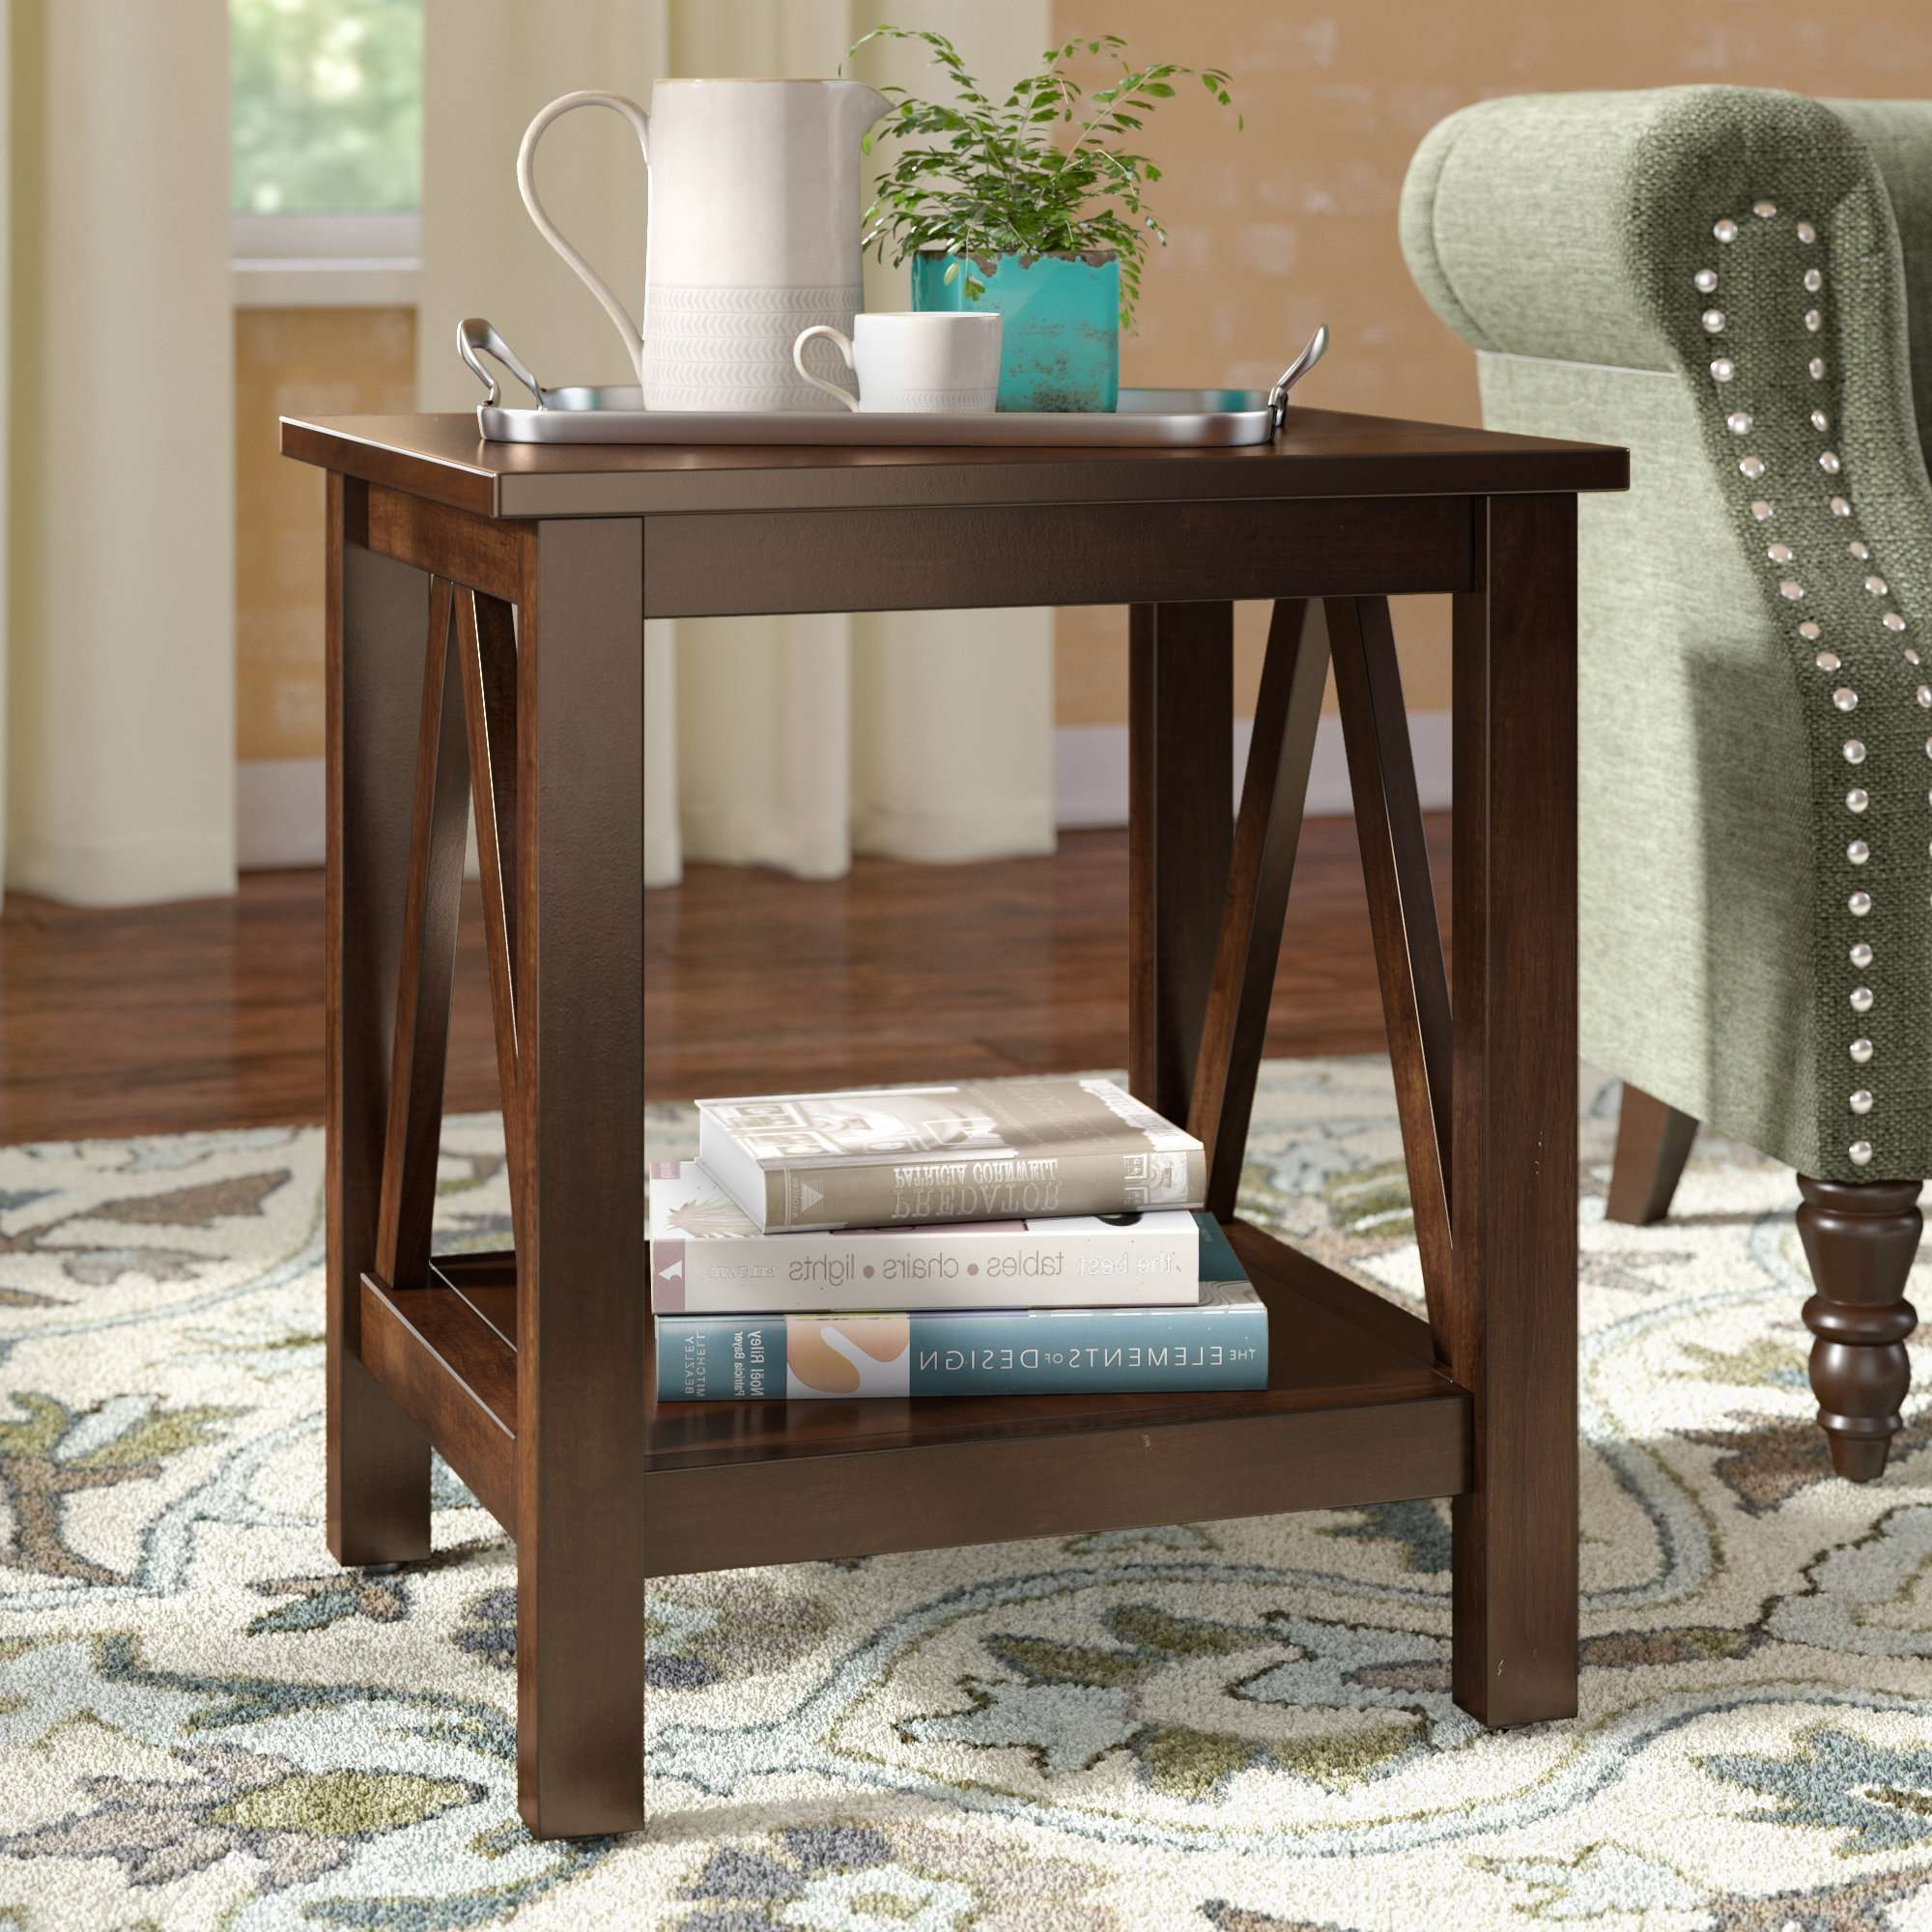 Wayfair In Well Known Rounded Corner Coffee Tables (View 6 of 20)